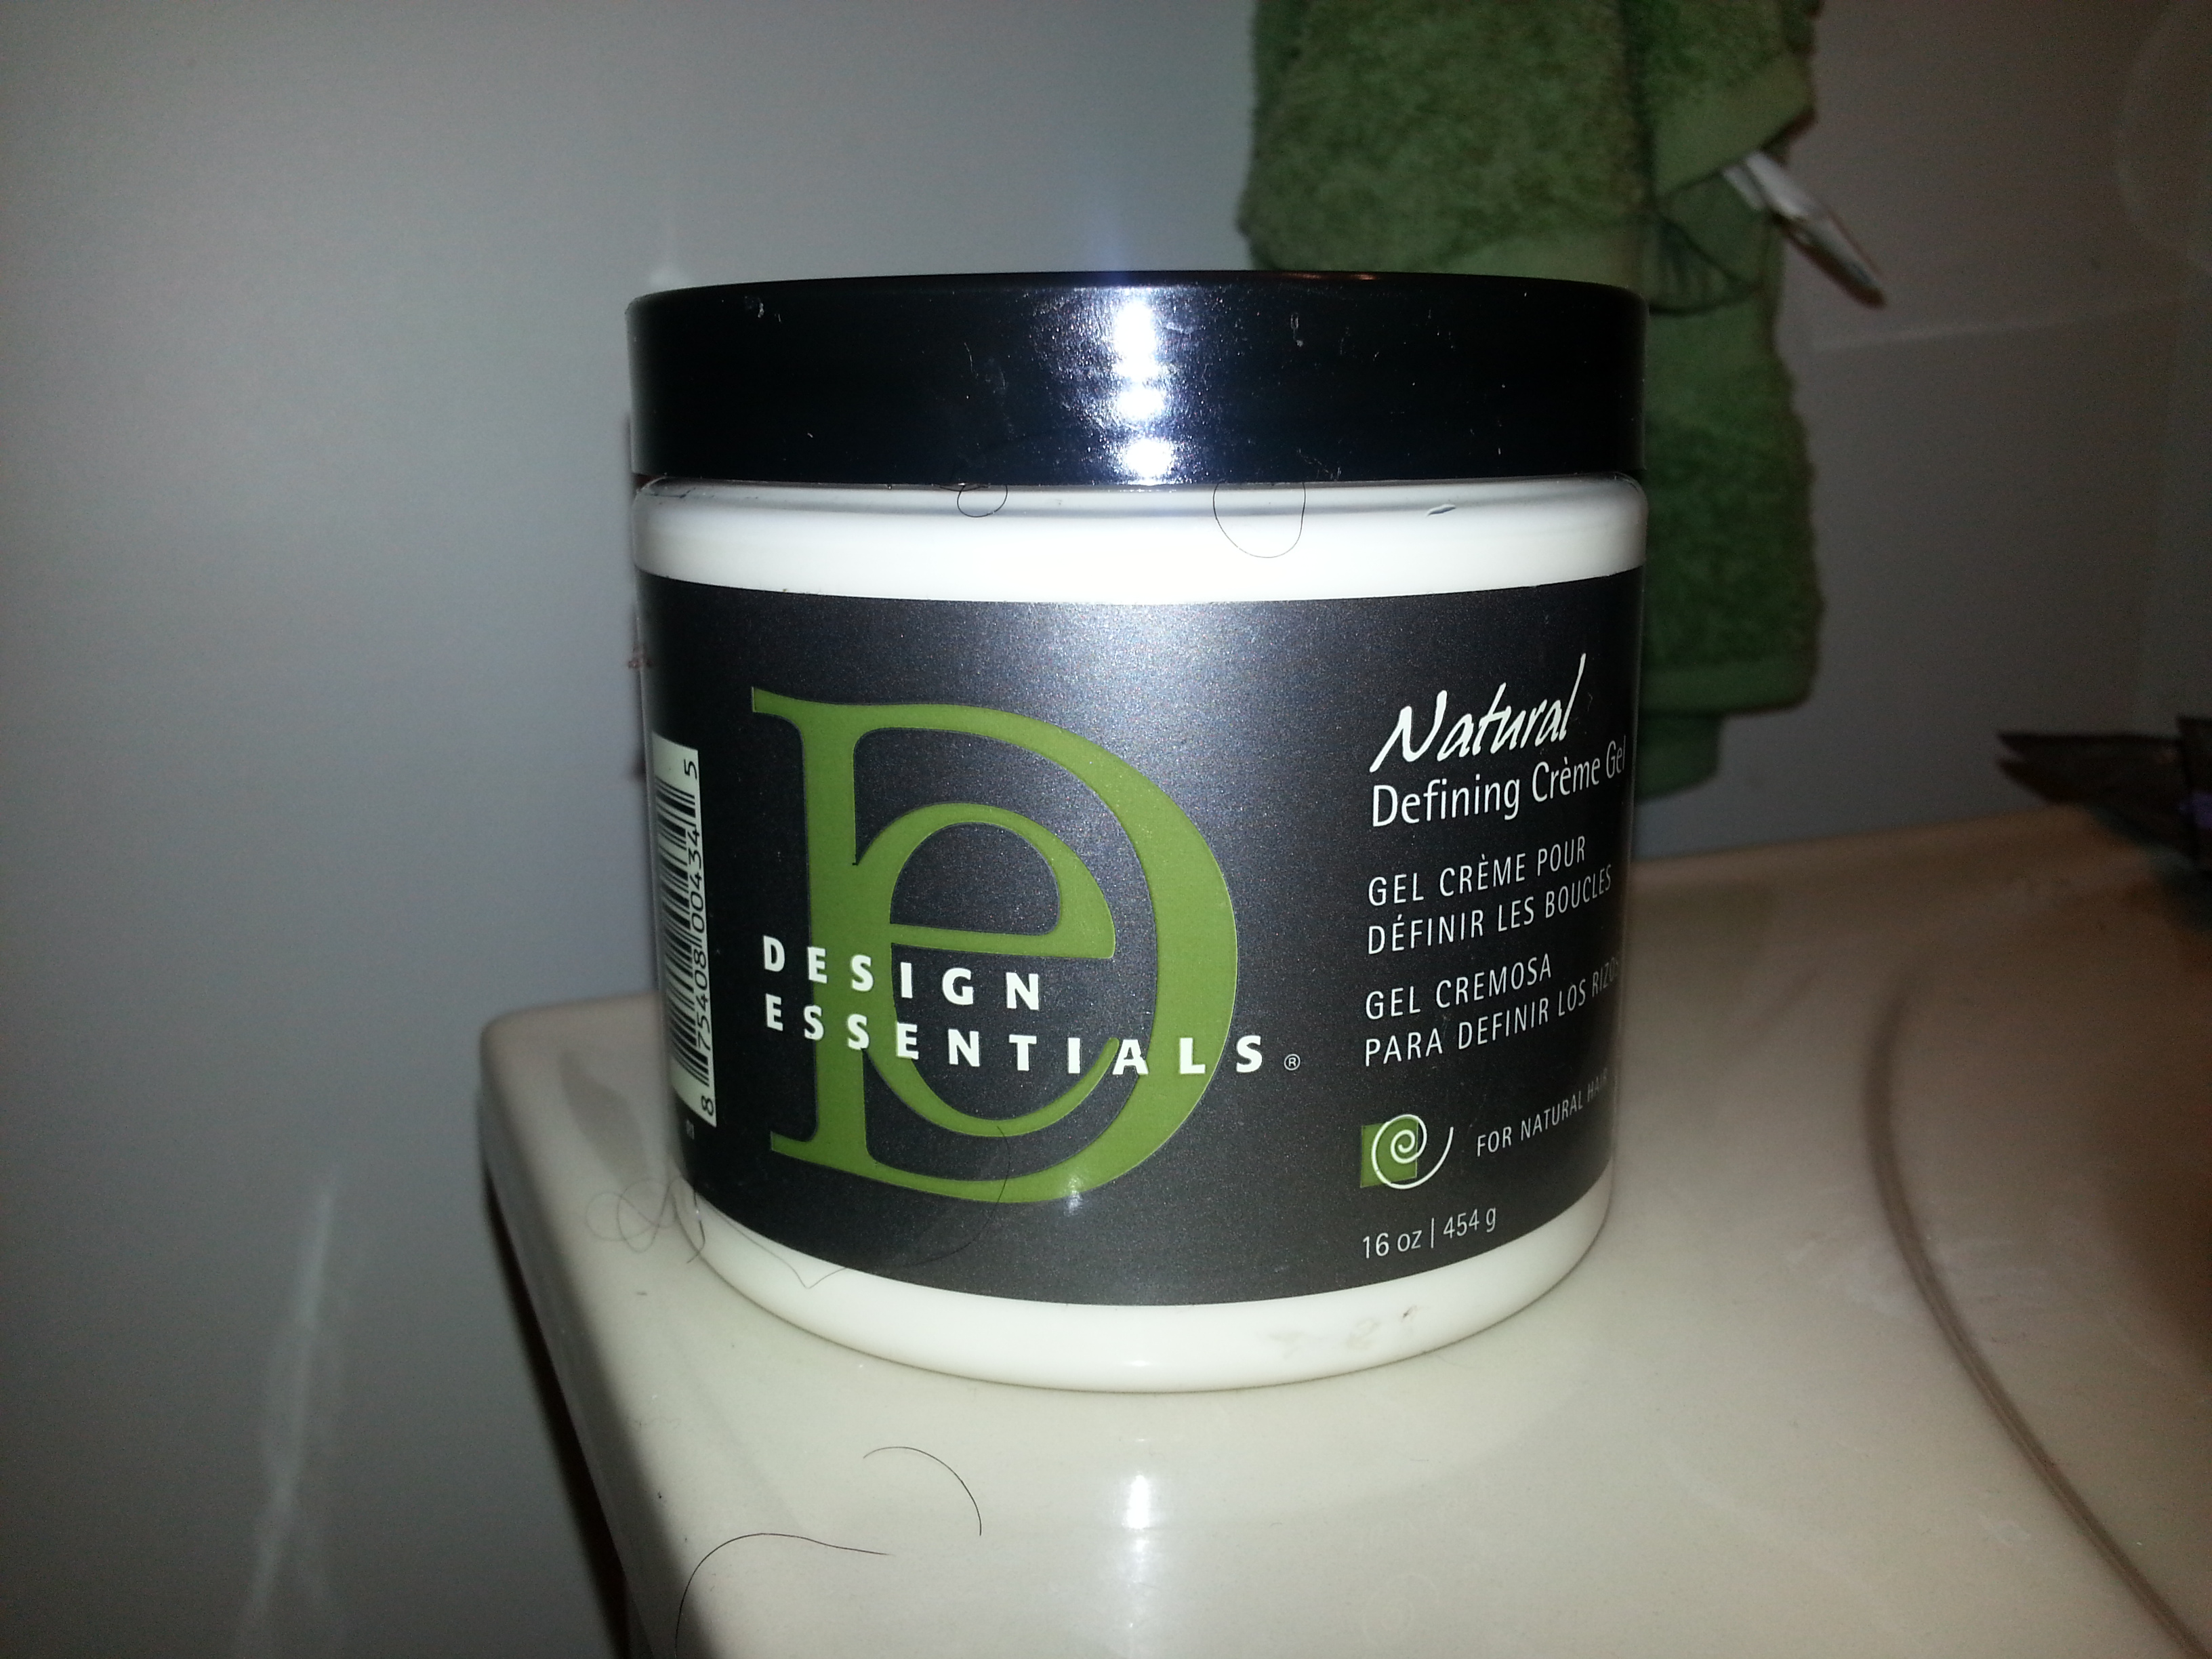 Review Design Essentials Natural Defining Creme Gel Happily Ever